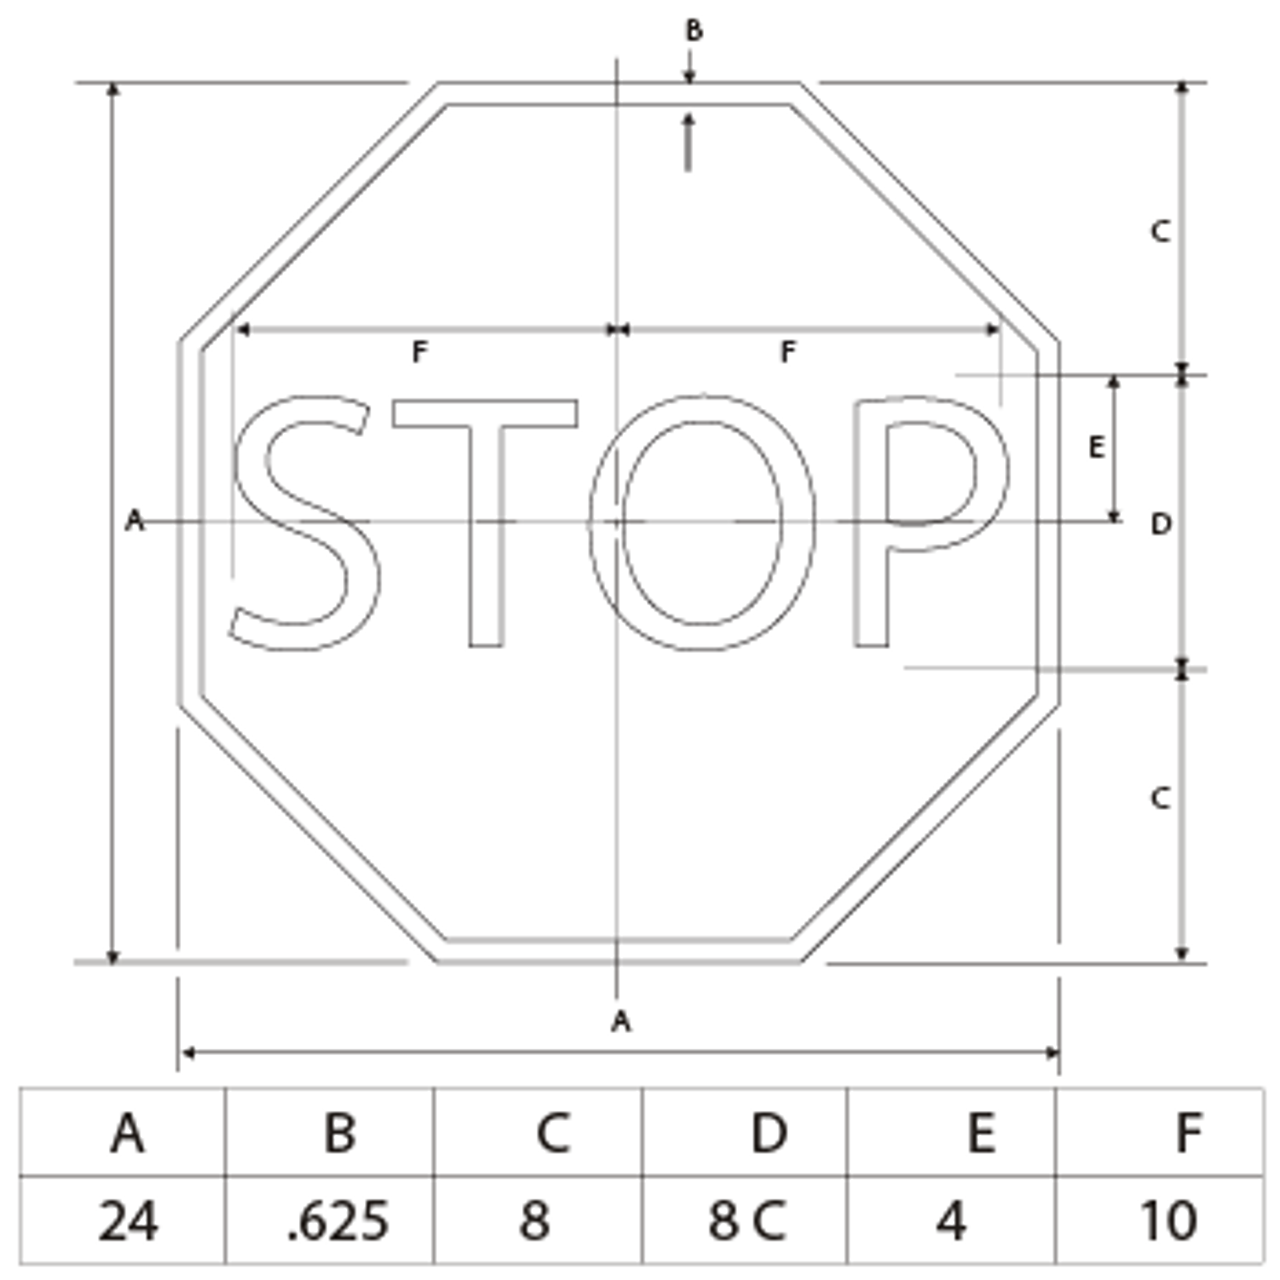 STOP SIGN dimensions